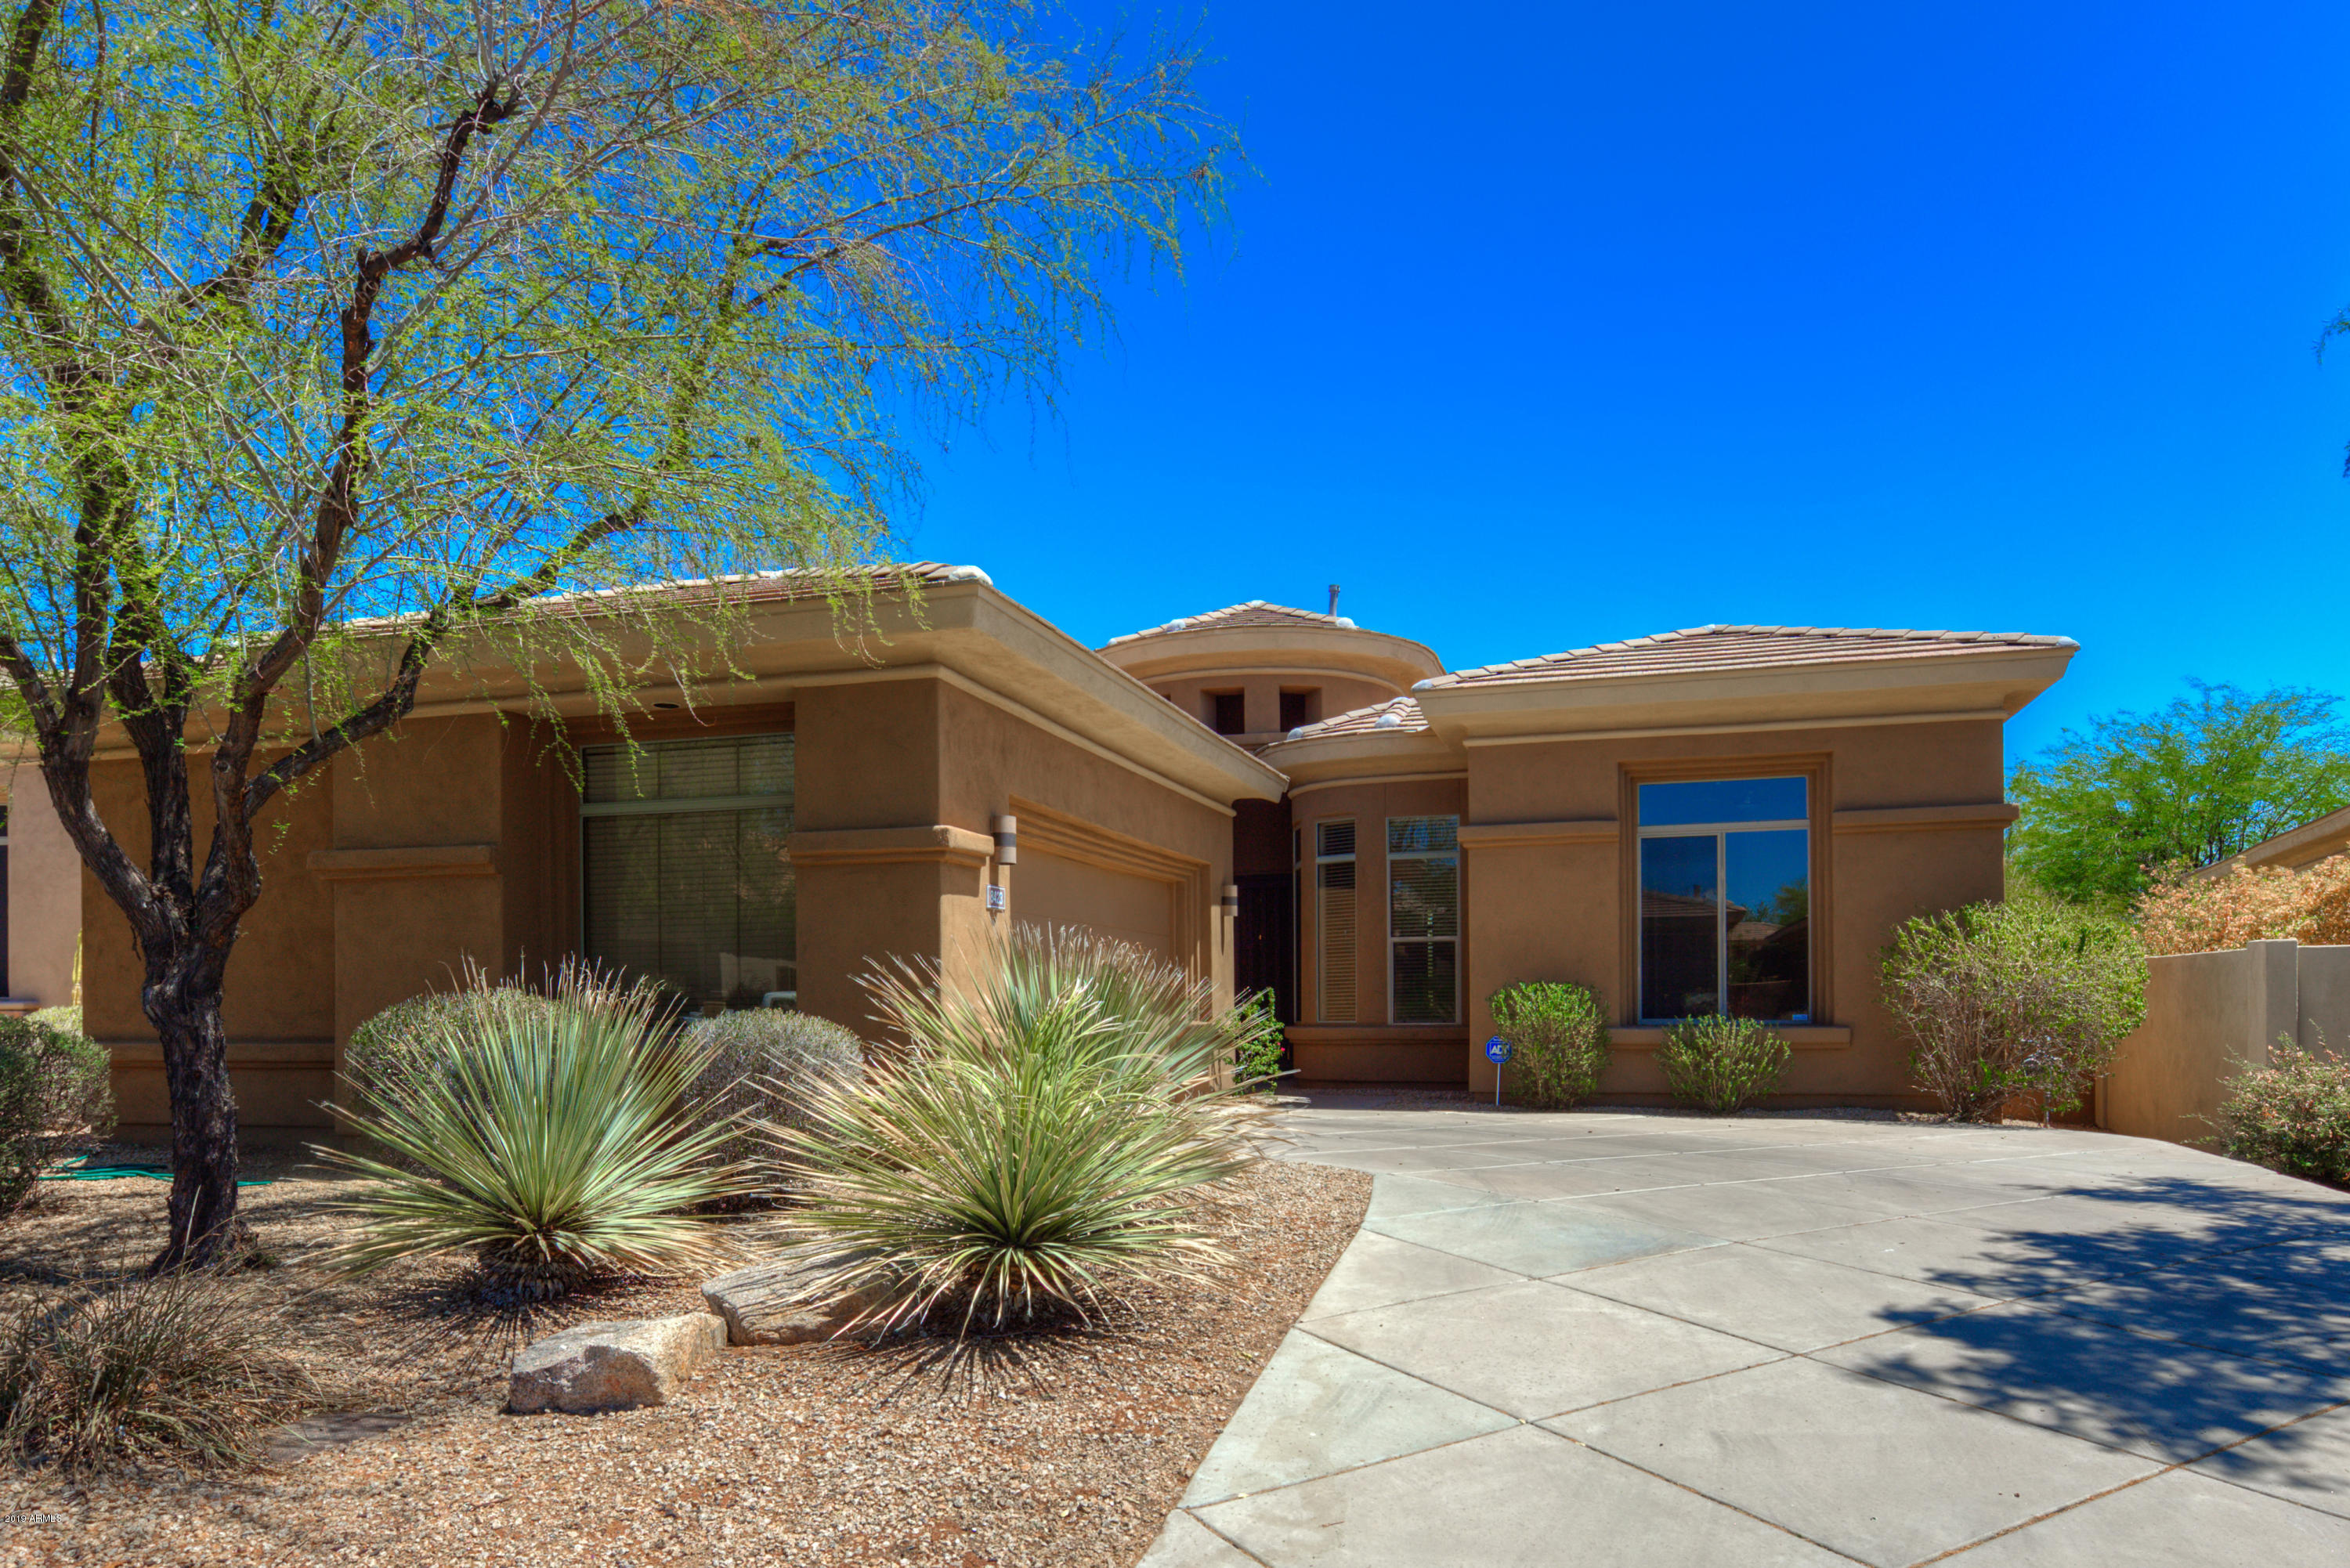 Photo of 8423 E HAVASUPAI Drive, Scottsdale, AZ 85255